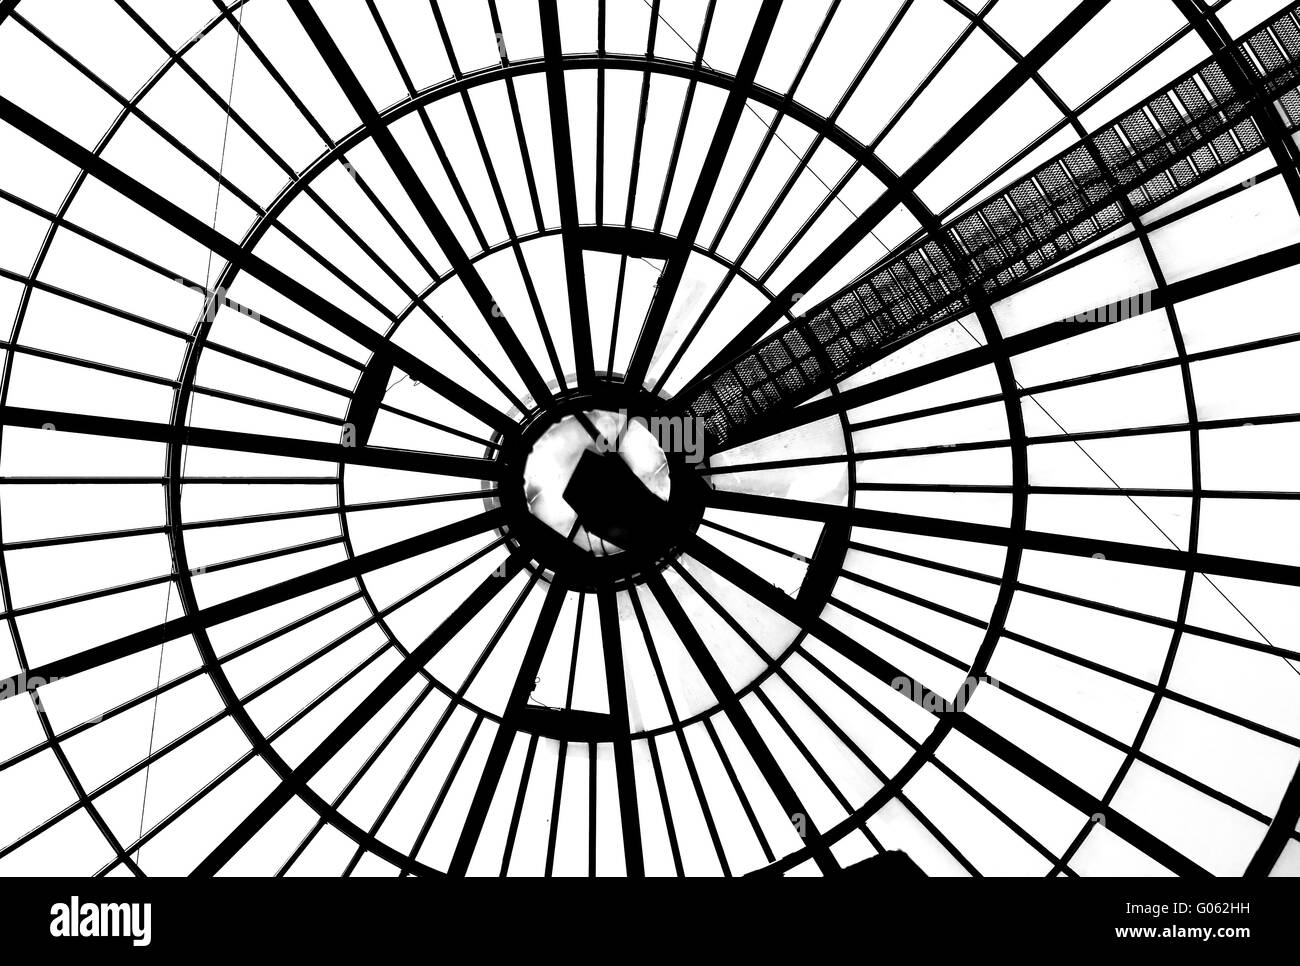 Domed roof - Stock Image